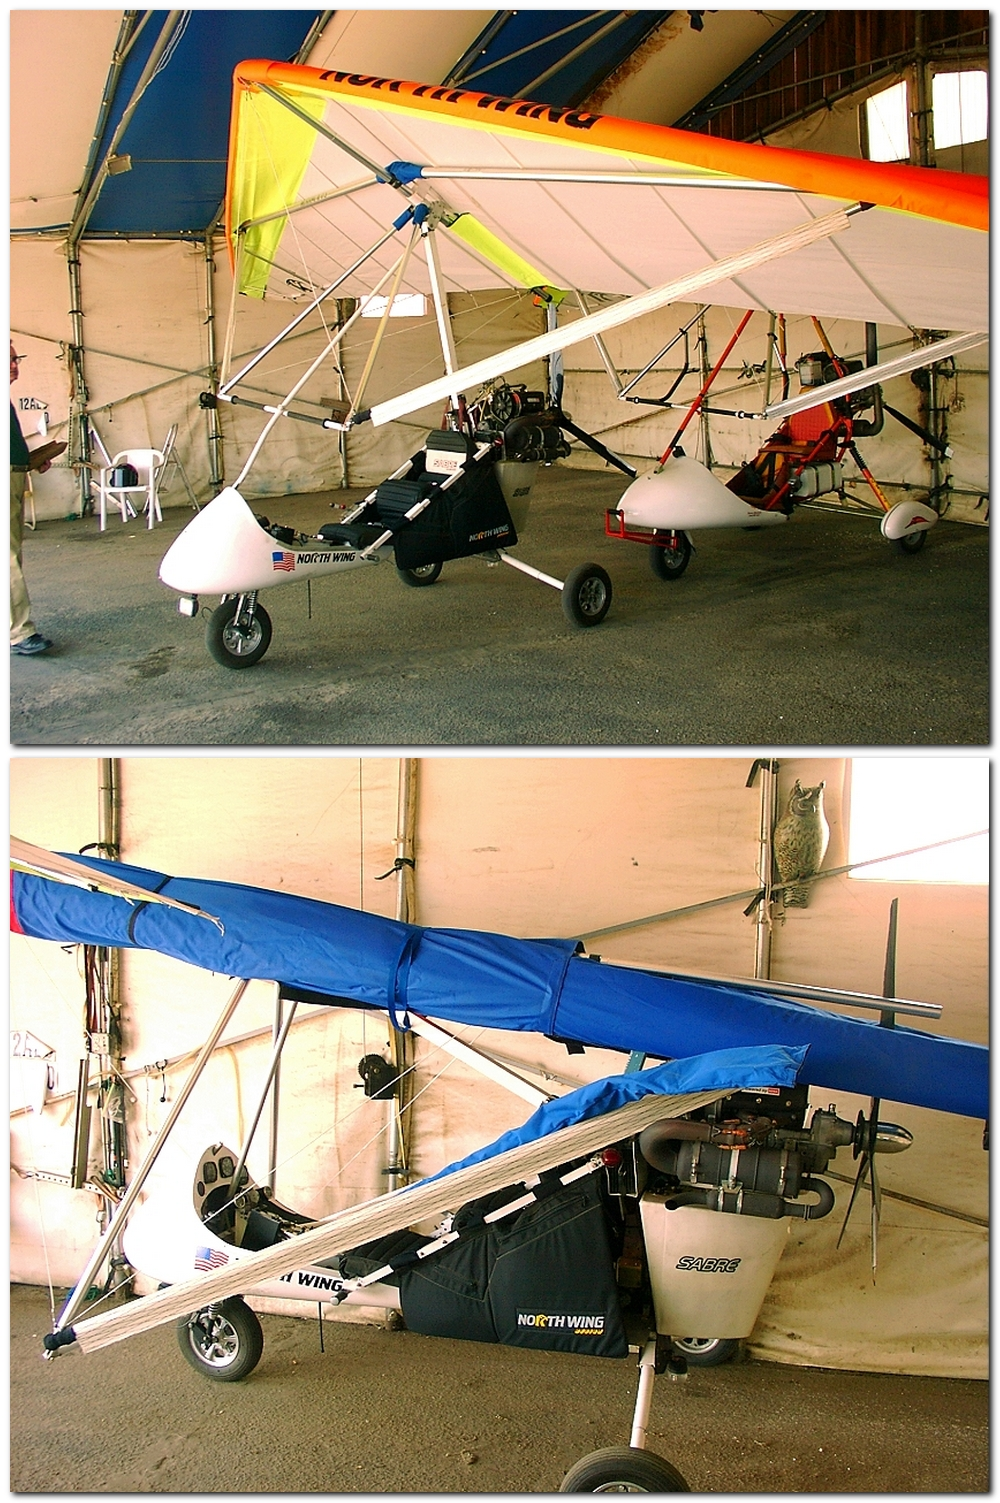 a z ultralight classifieds main page